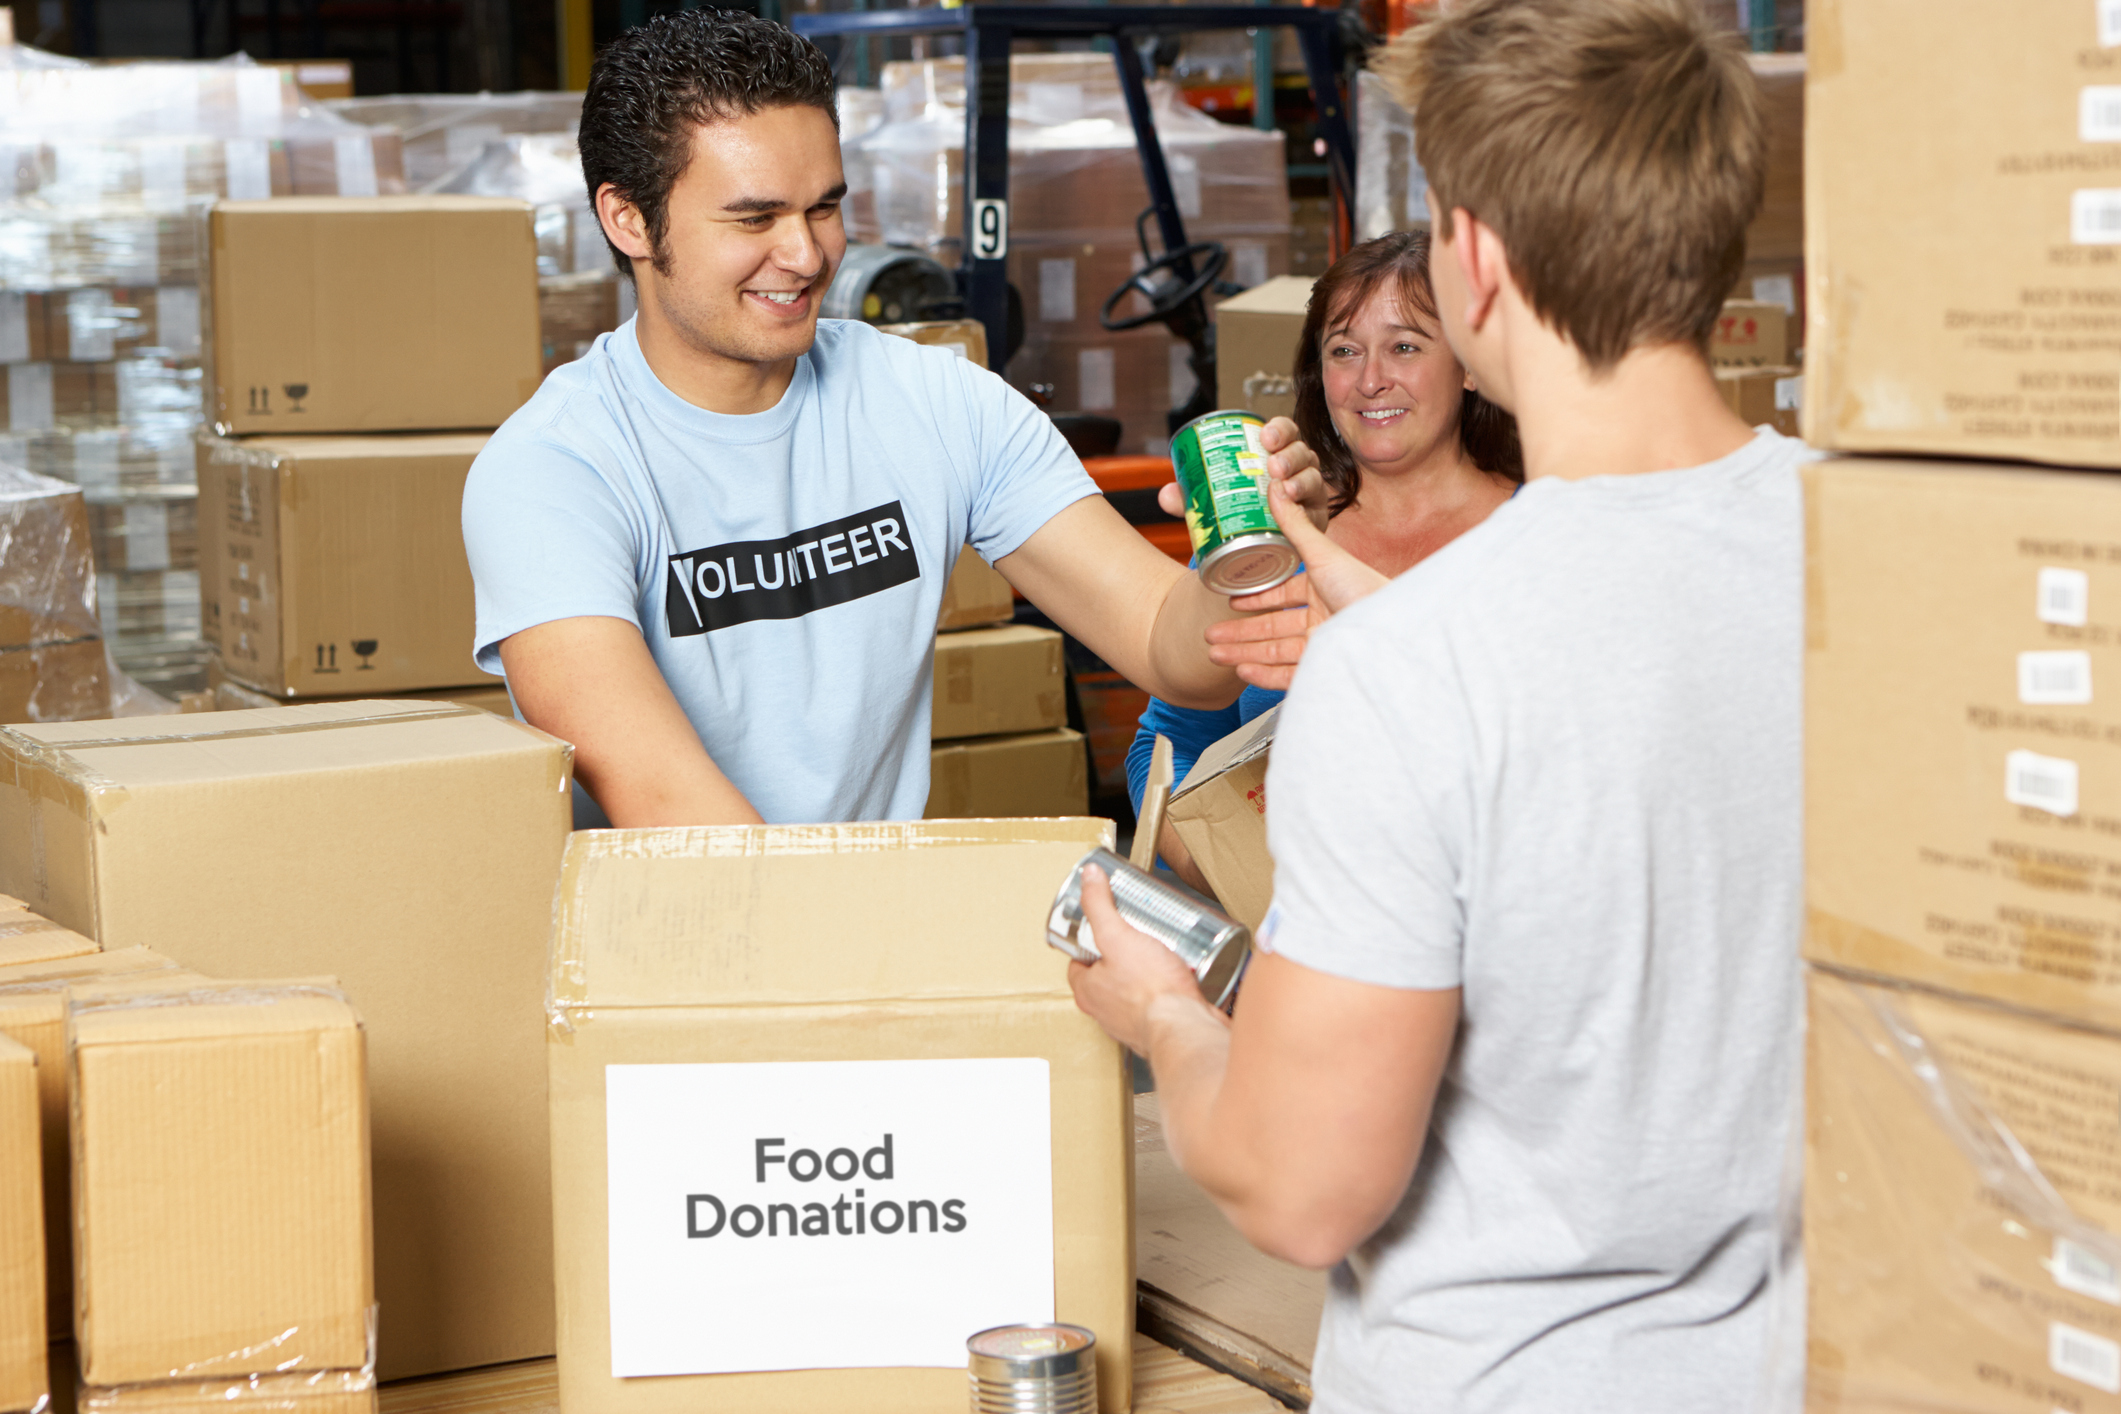 Food donations being boxed up by volunteers in a warehouse